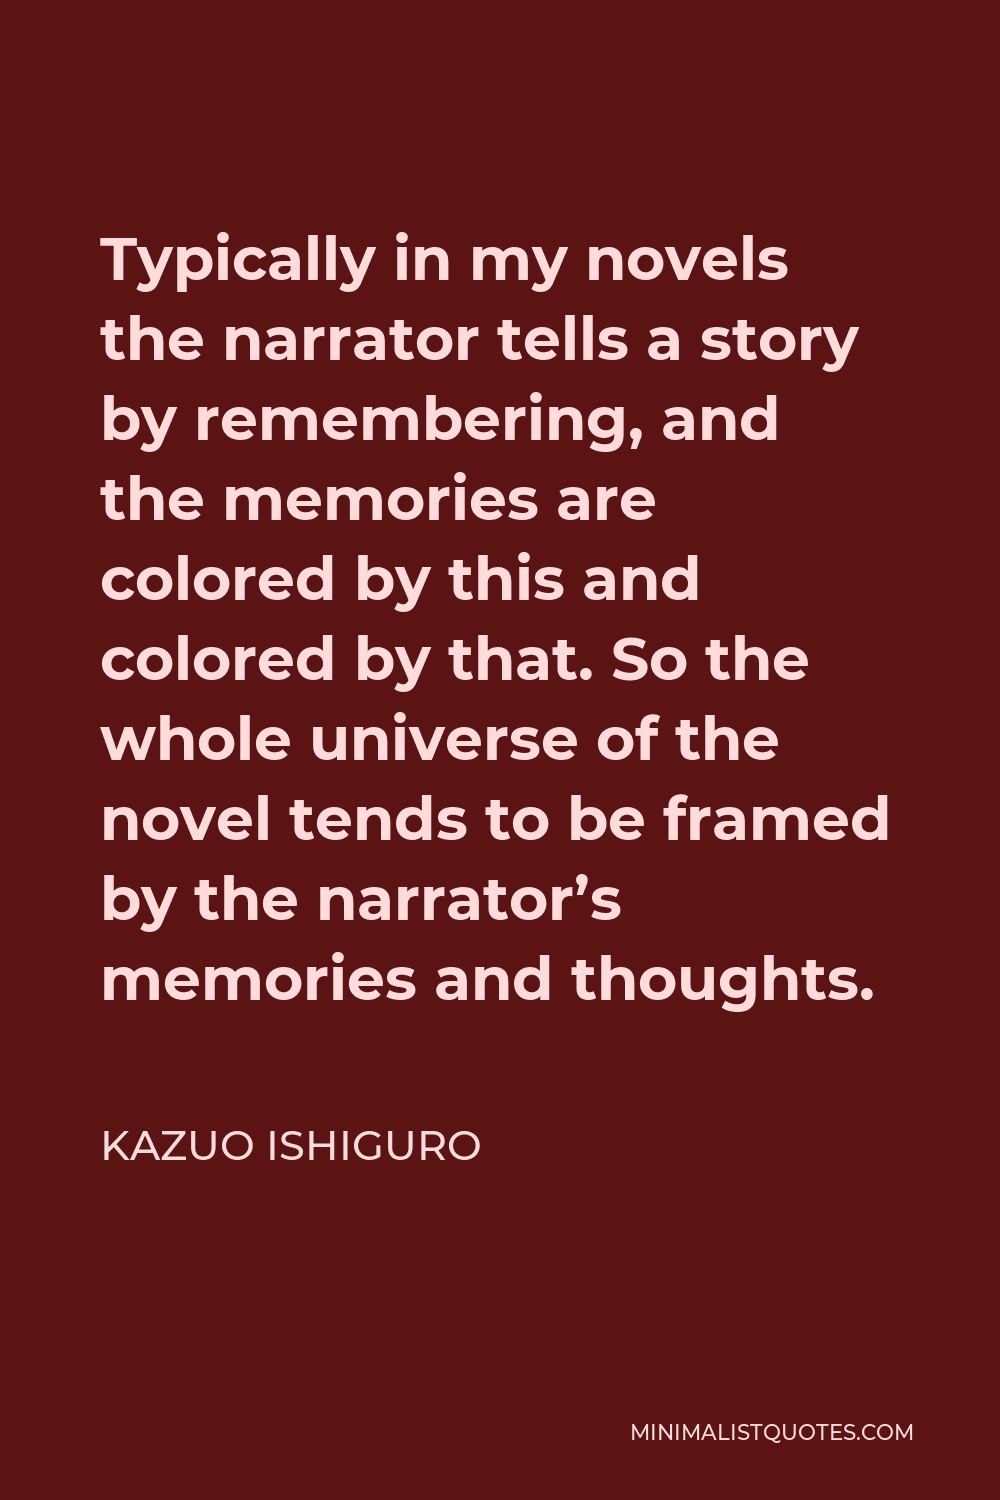 Kazuo Ishiguro Quote - Typically in my novels the narrator tells a story by remembering, and the memories are colored by this and colored by that. So the whole universe of the novel tends to be framed by the narrator's memories and thoughts.